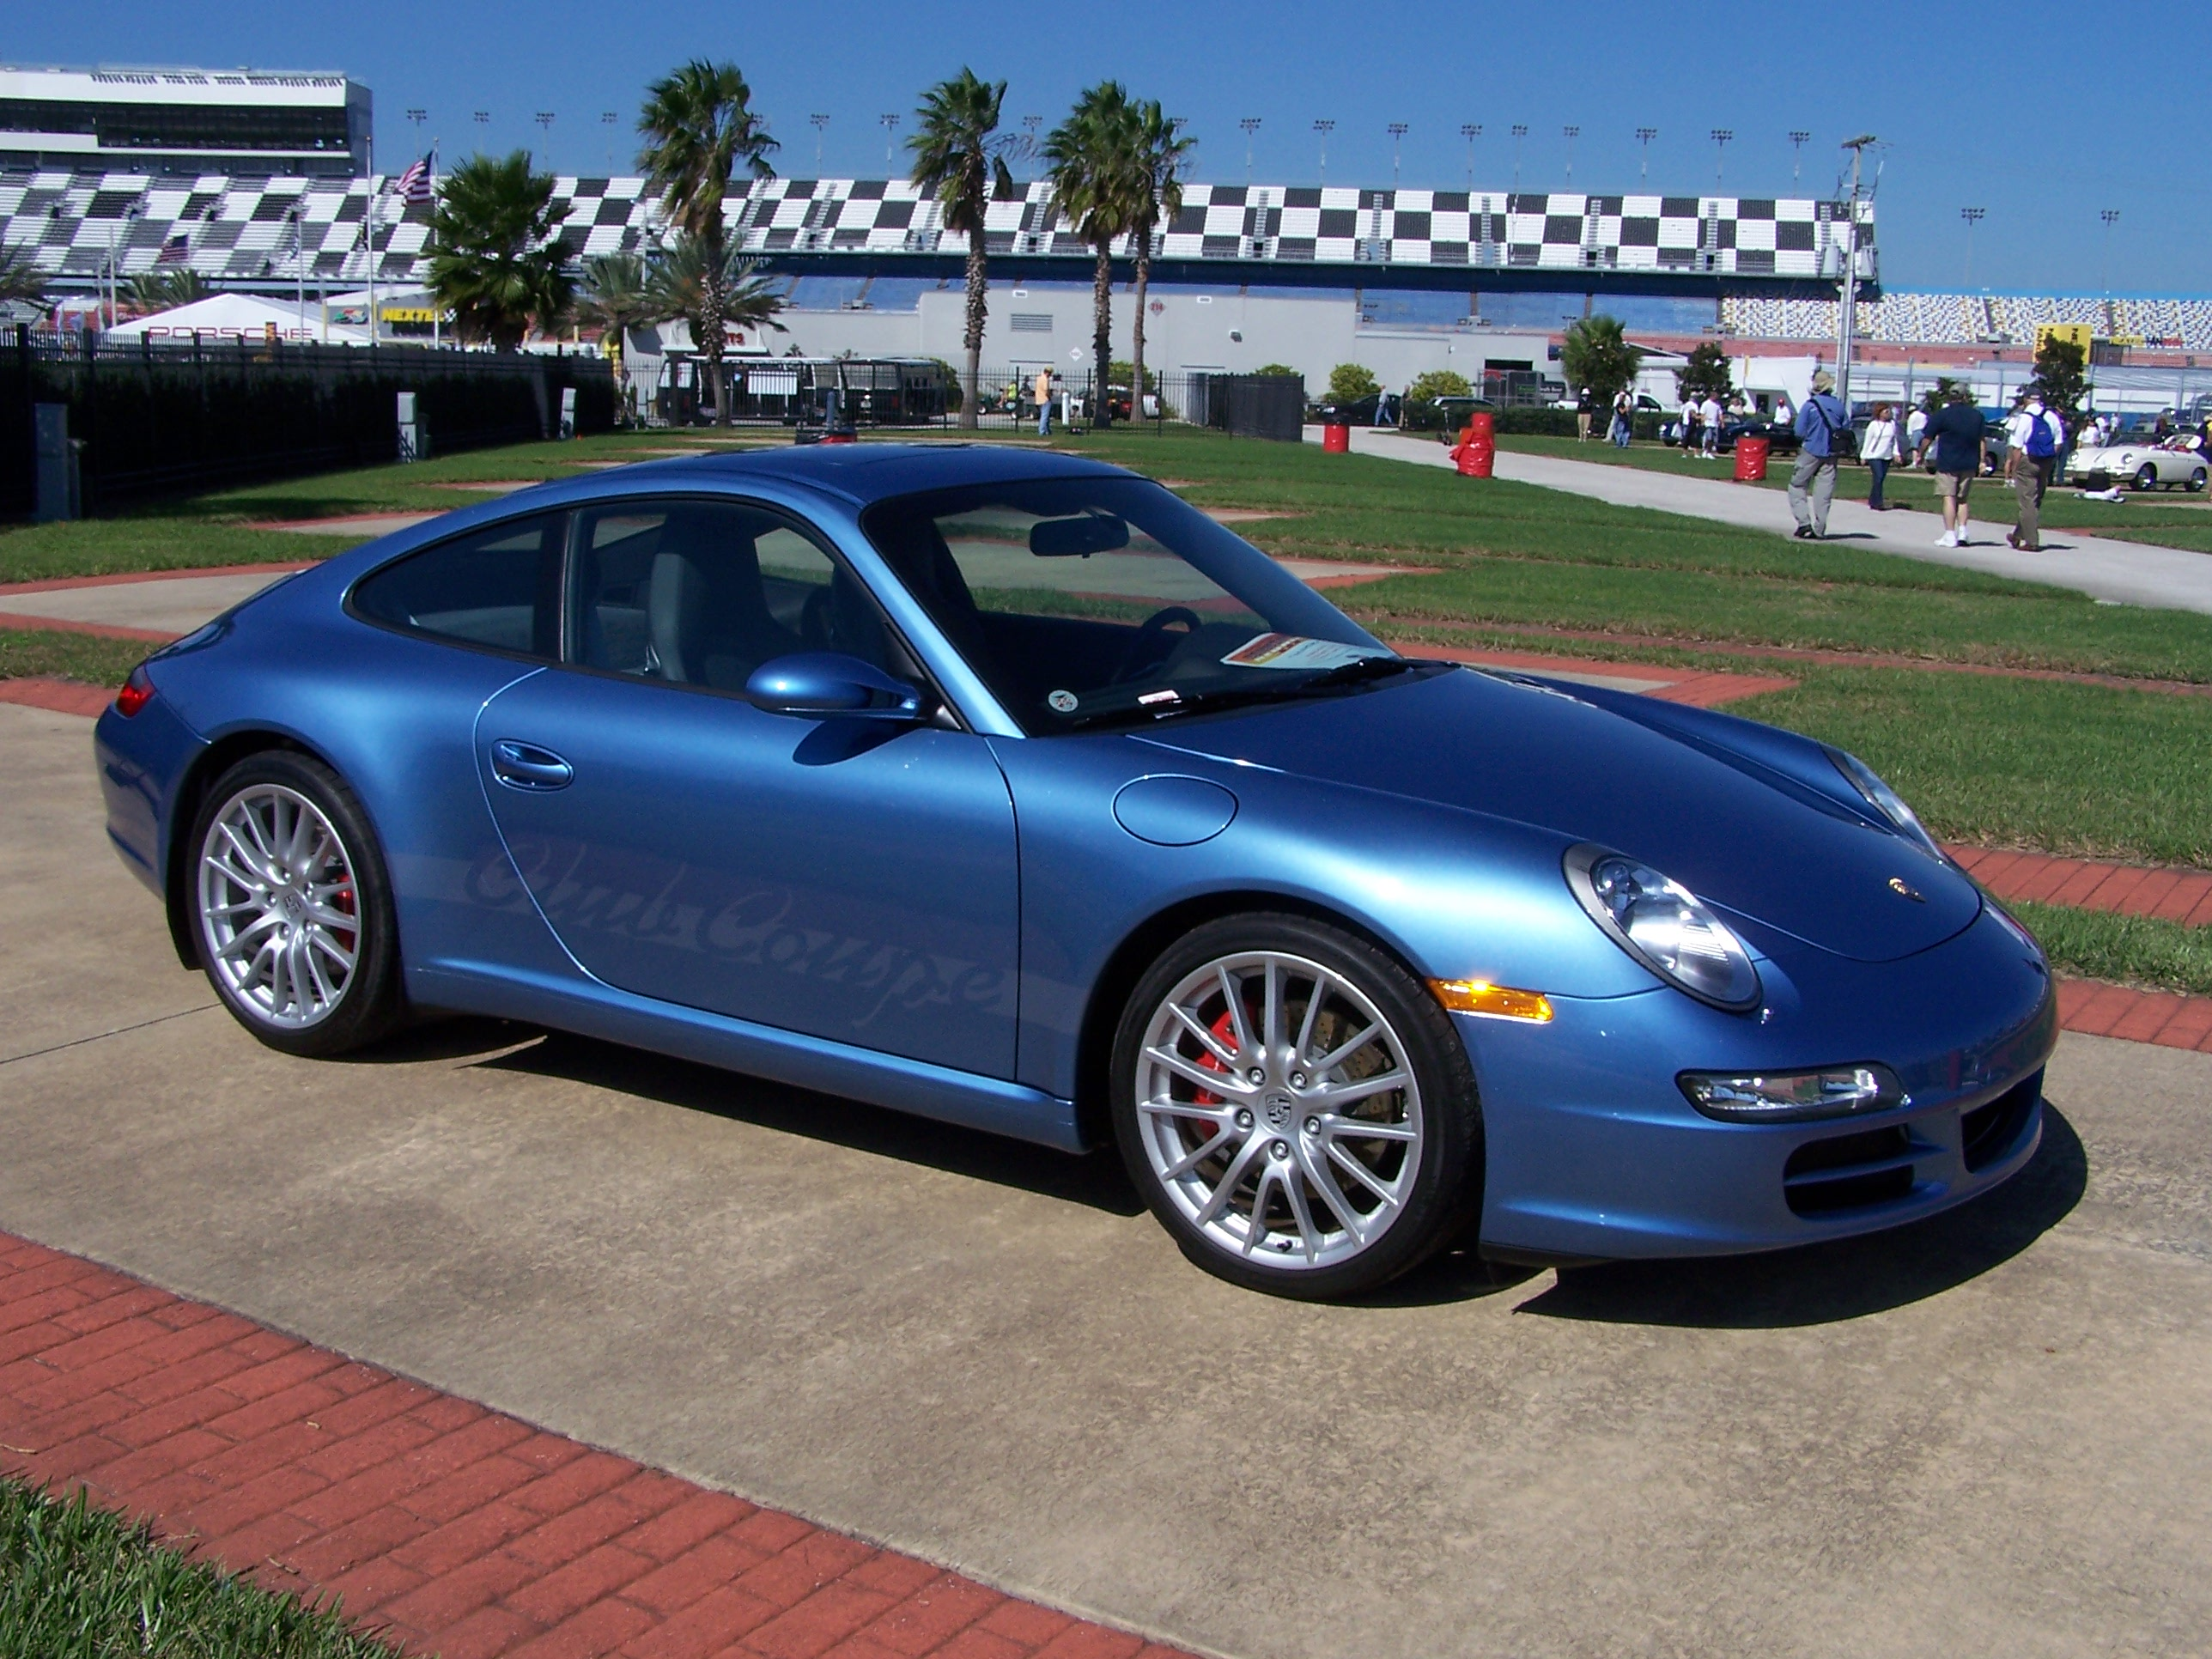 porsche x51 for sale with 2006 Porsche Club Coupes In Azzuro California Blue on 4946727 likewise 6279424 besides 201702 further 6144300 in addition 6553151.